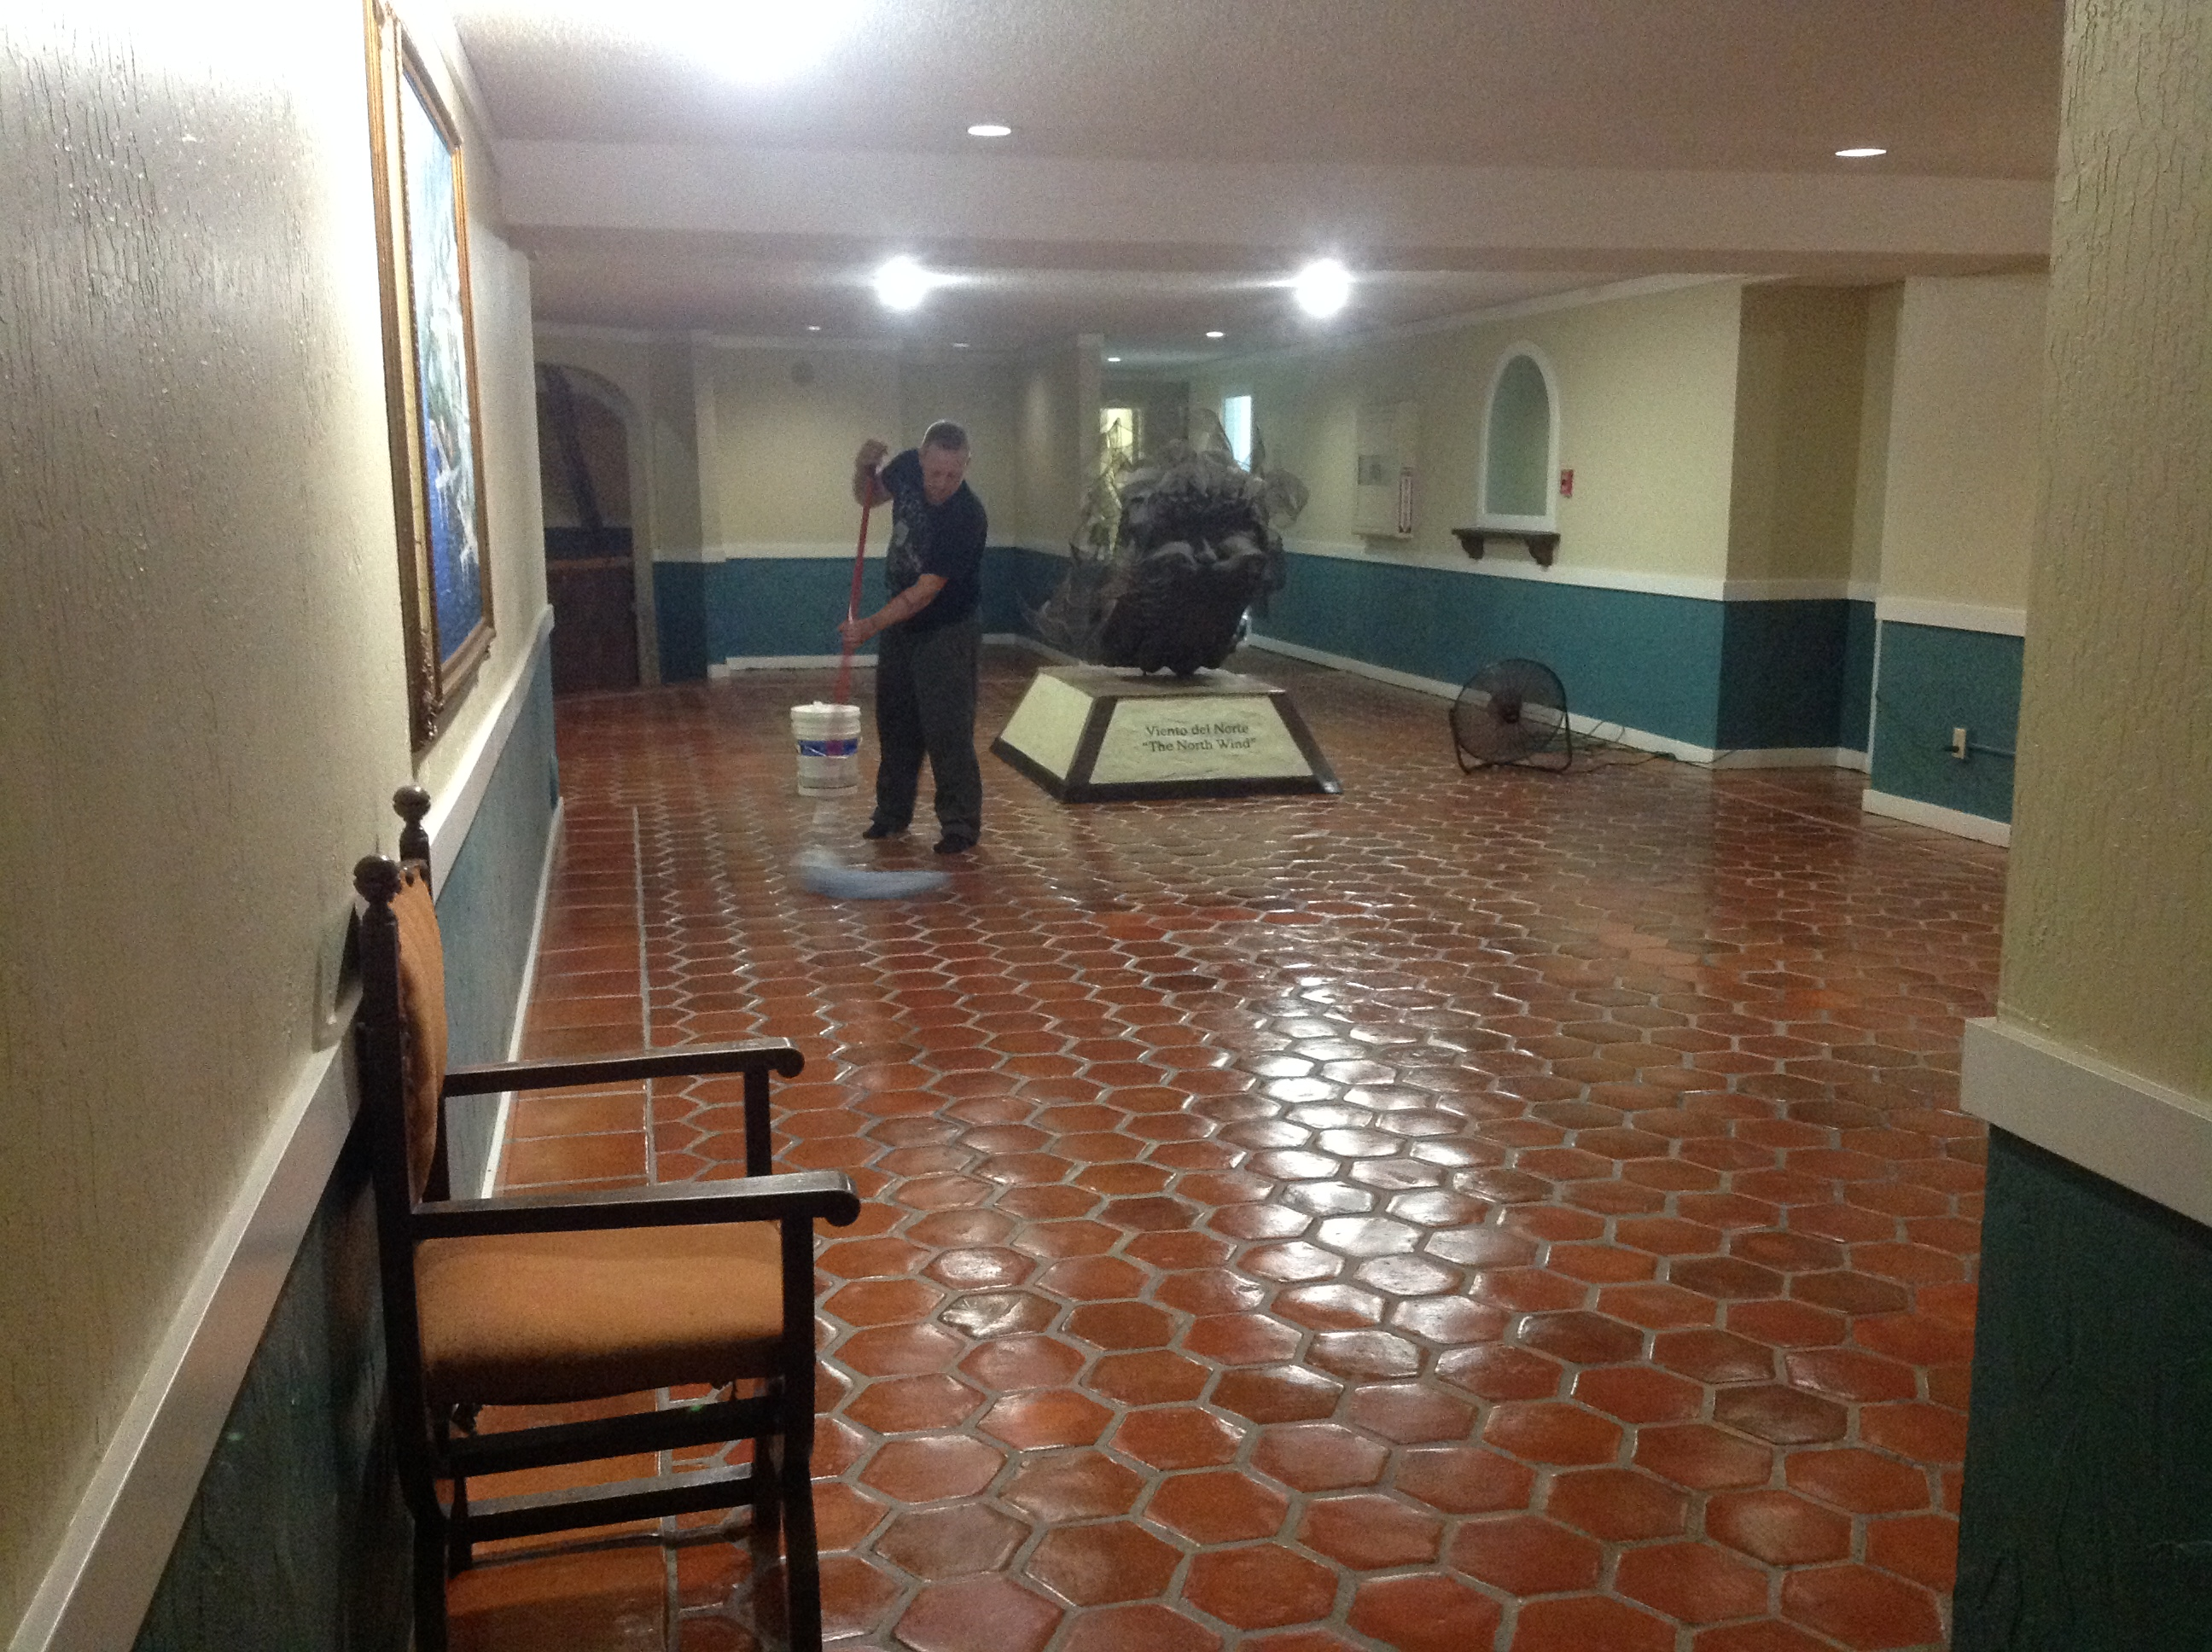 Commercial Cleaning Restaurants Bathrooms Lobby